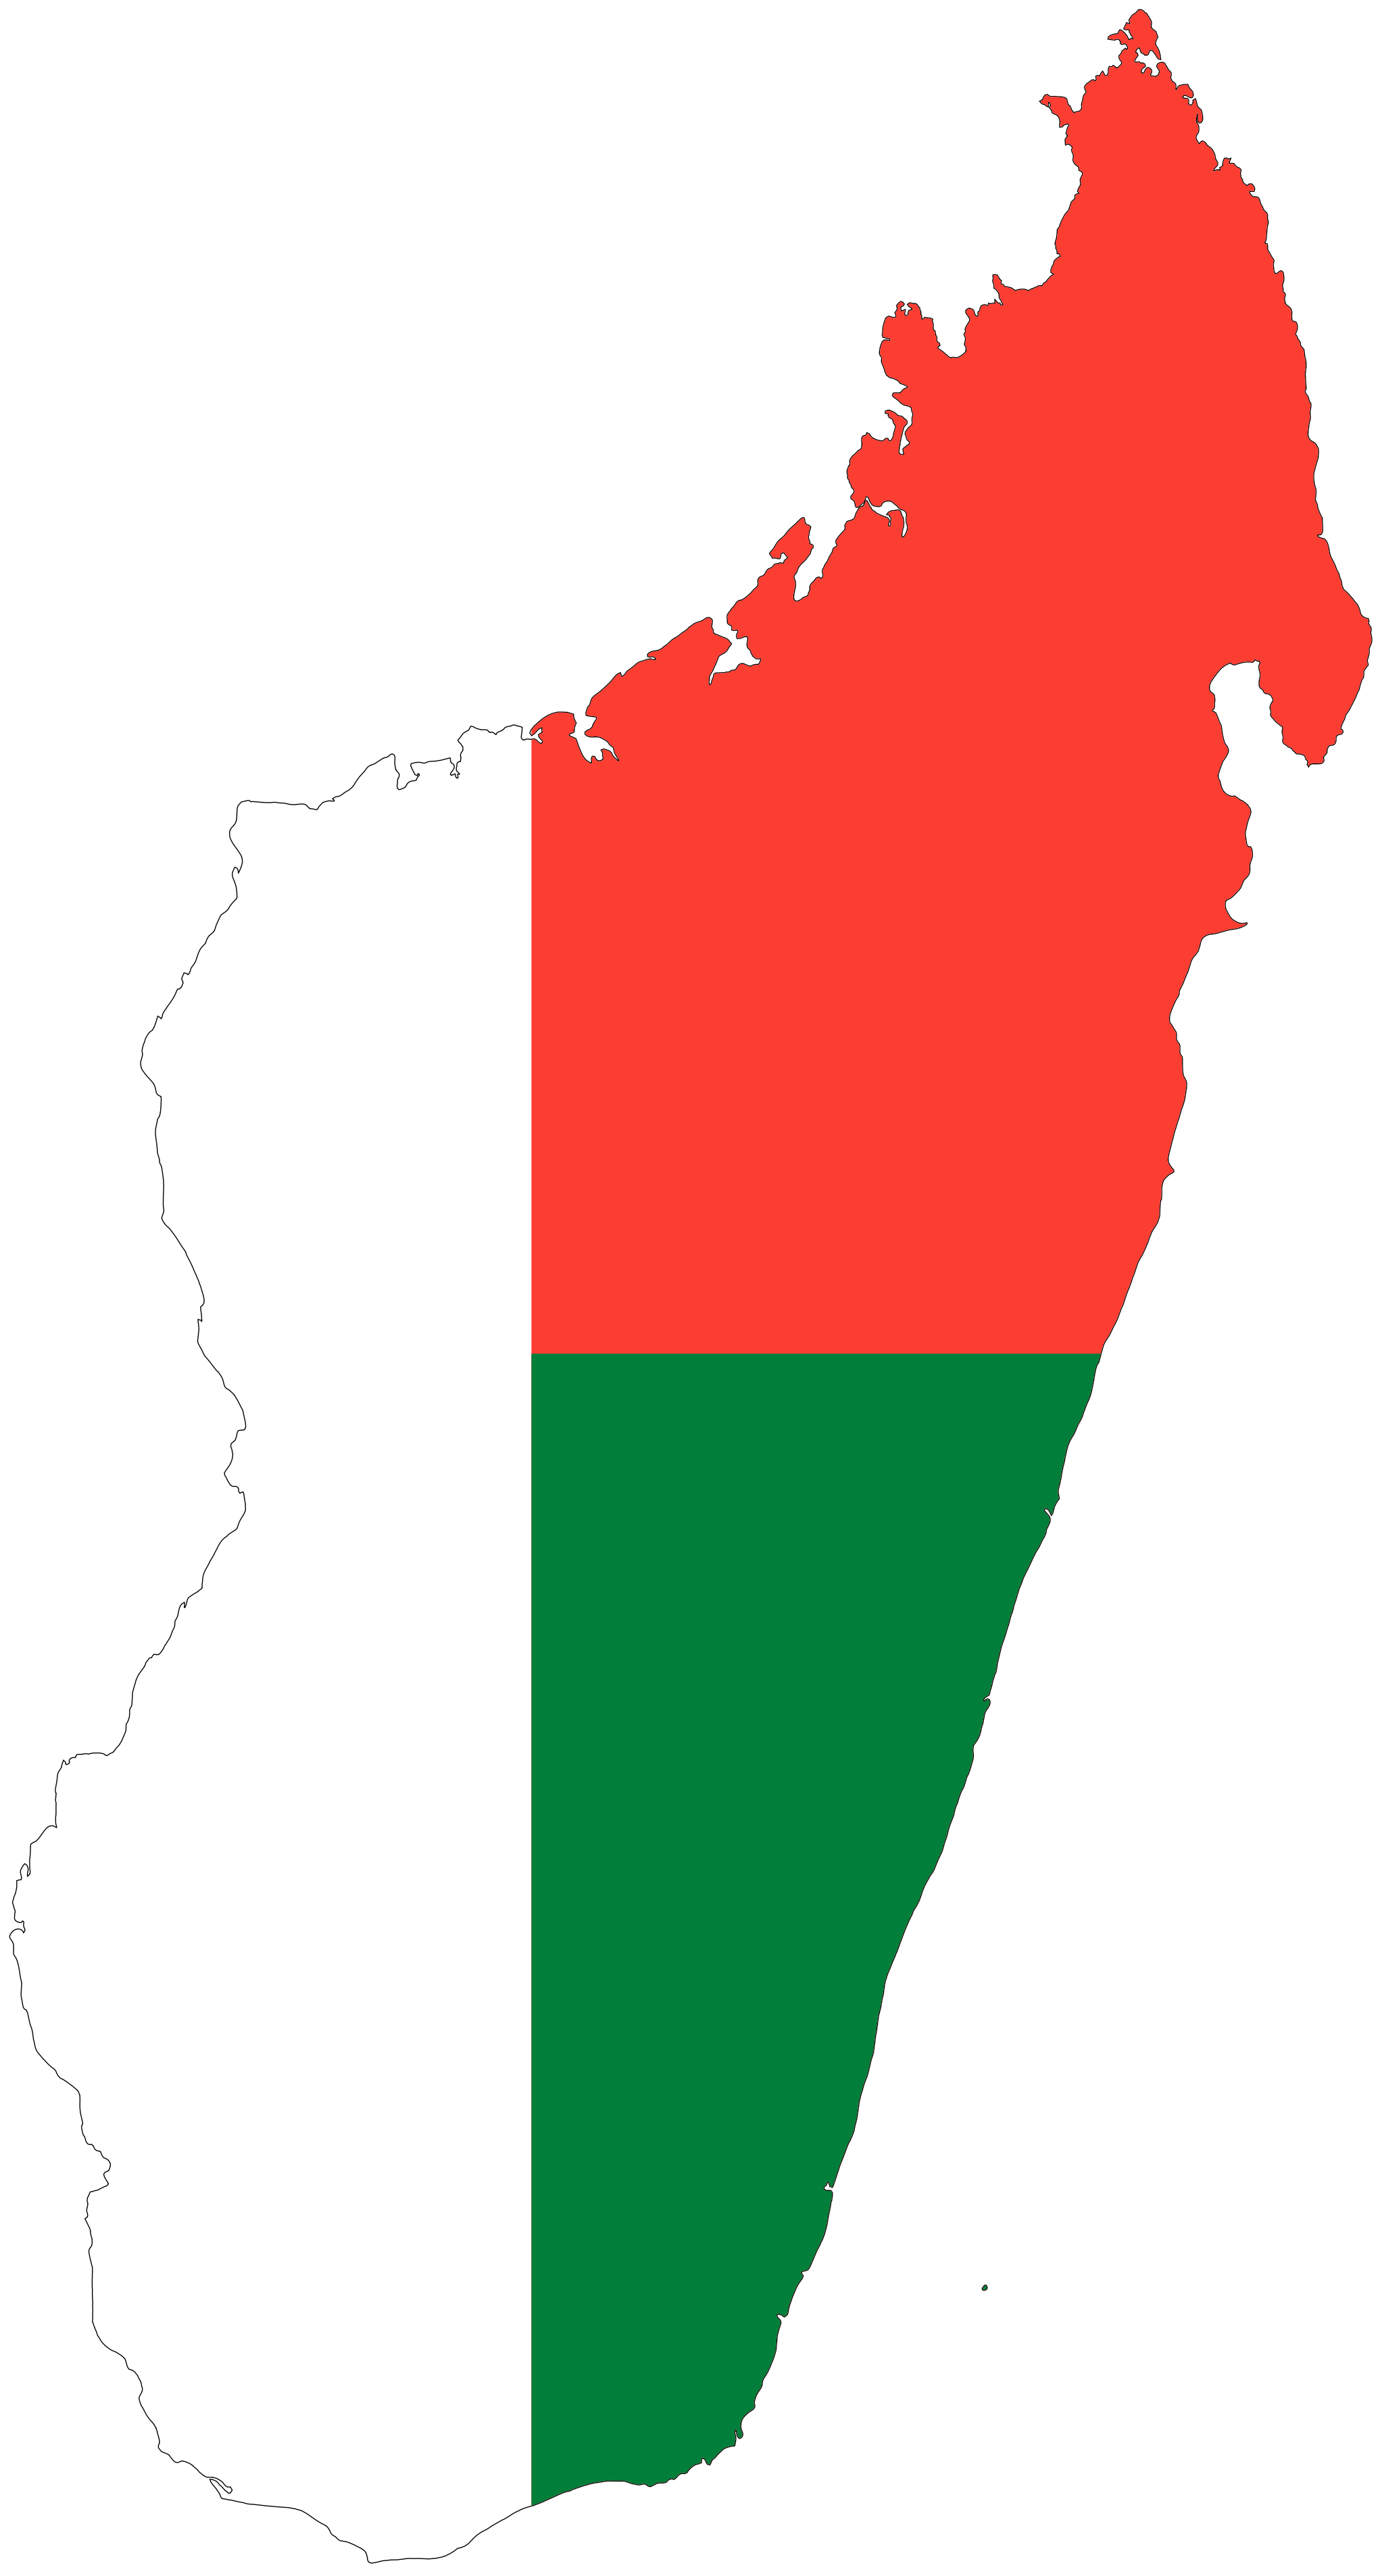 Madagascar flag africa pinterest. Clipart map scout map